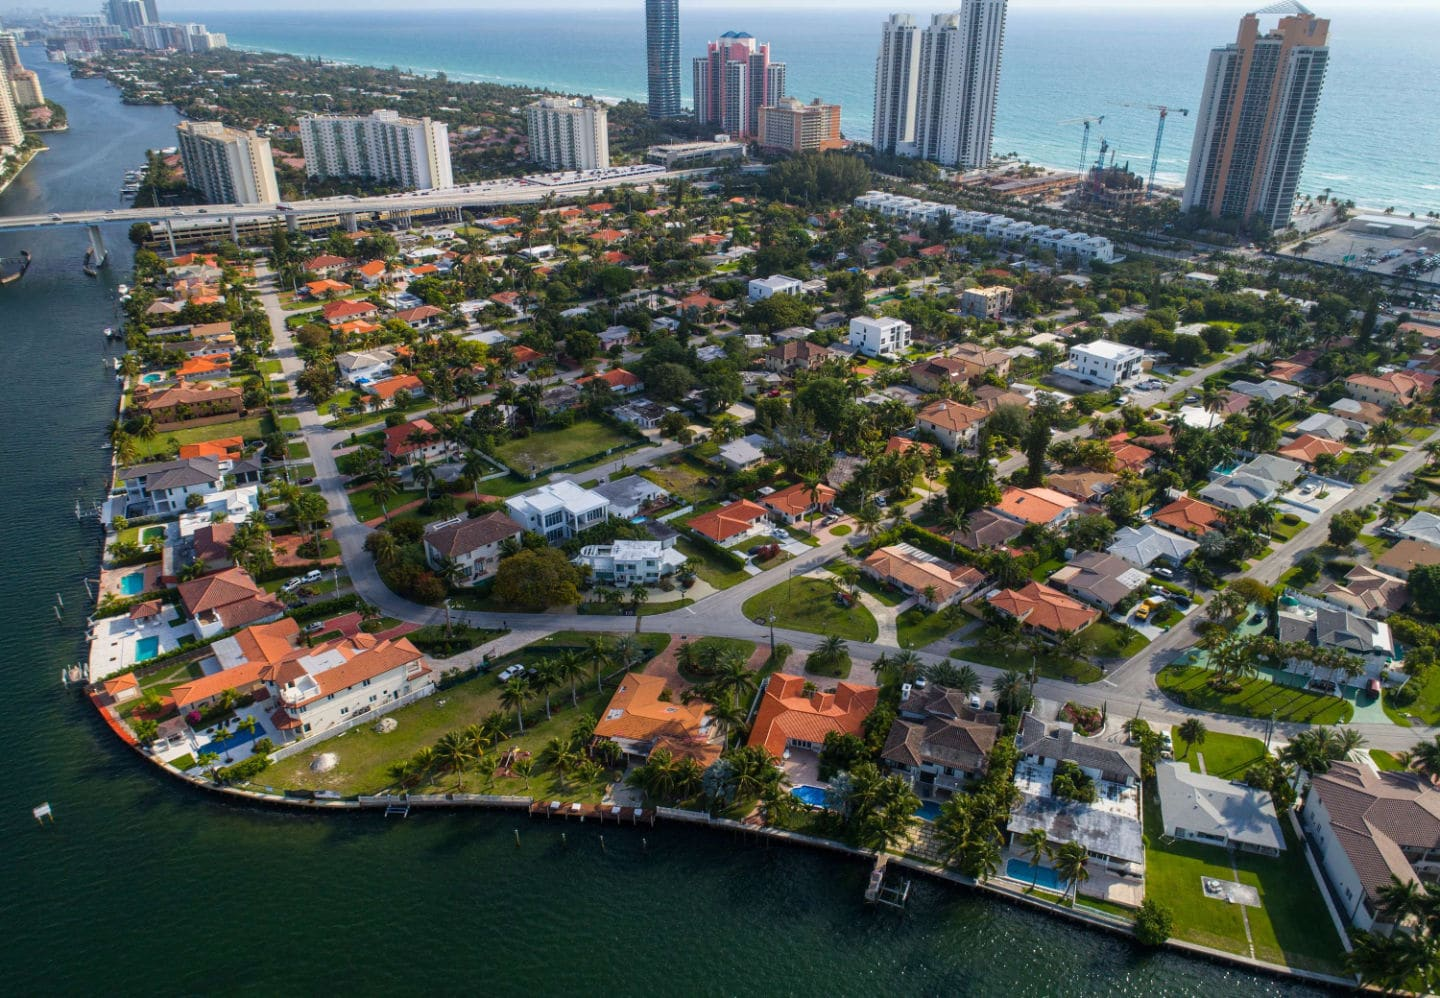 Aerial view of Golden Shores Neighborhood